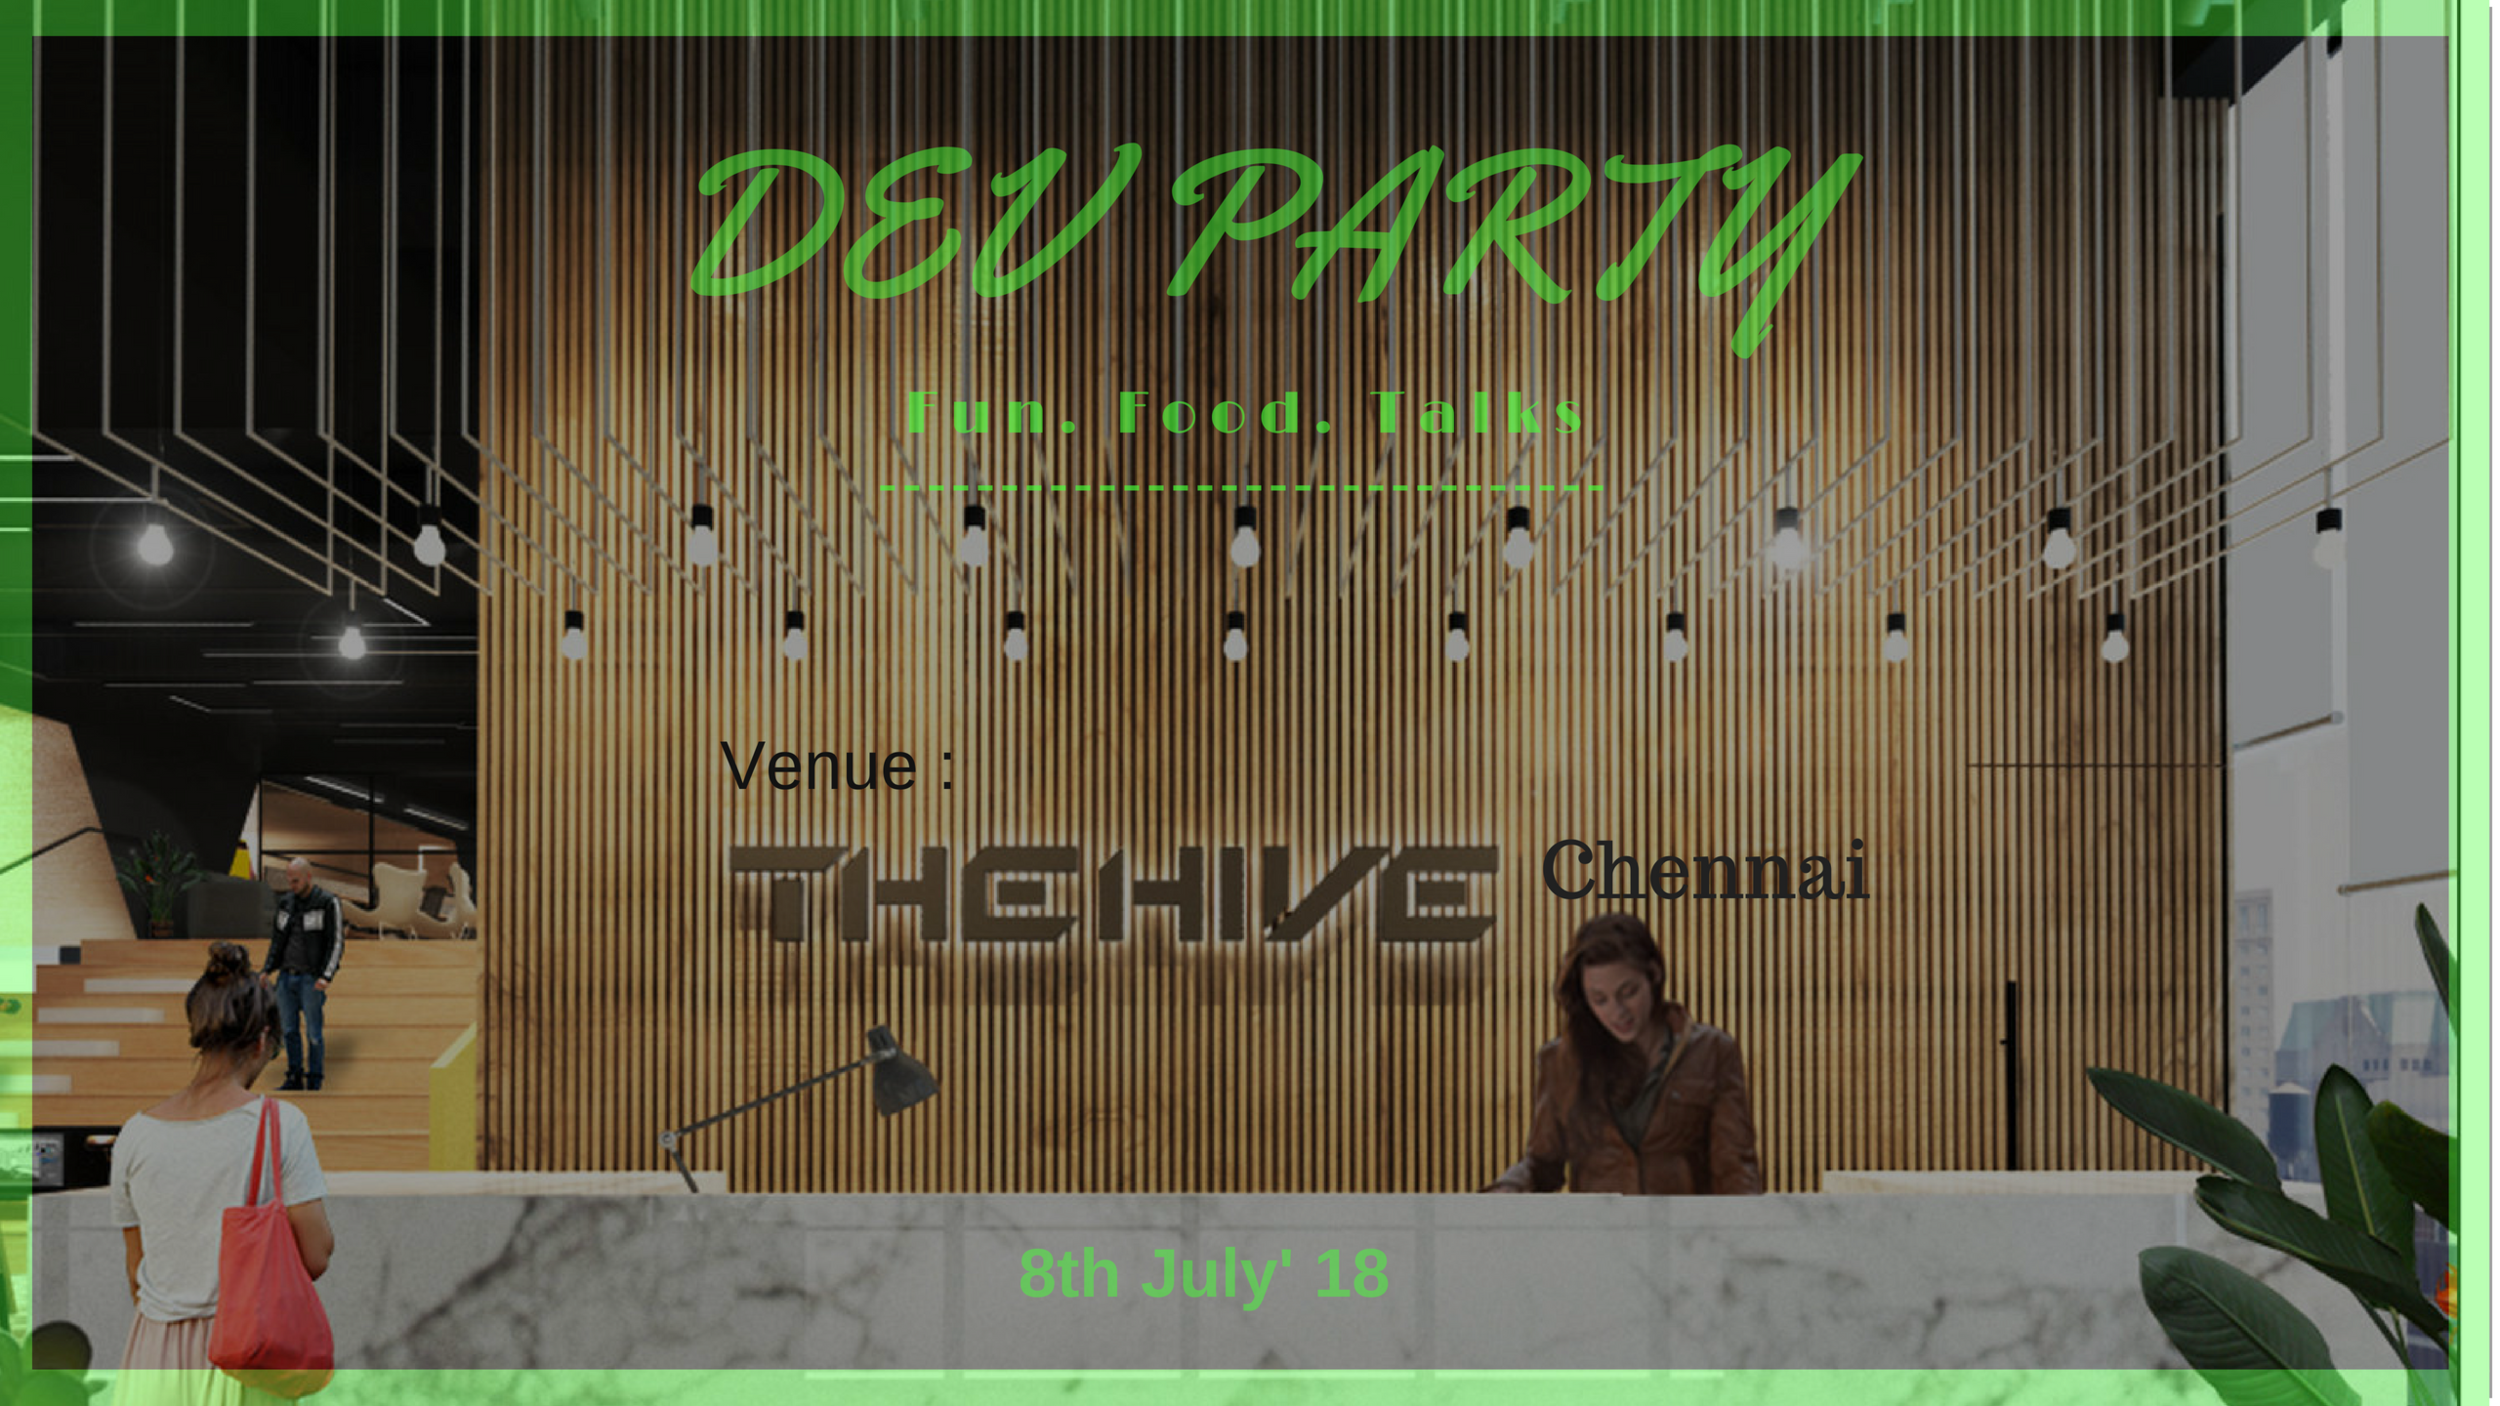 Dev Party at The Hive